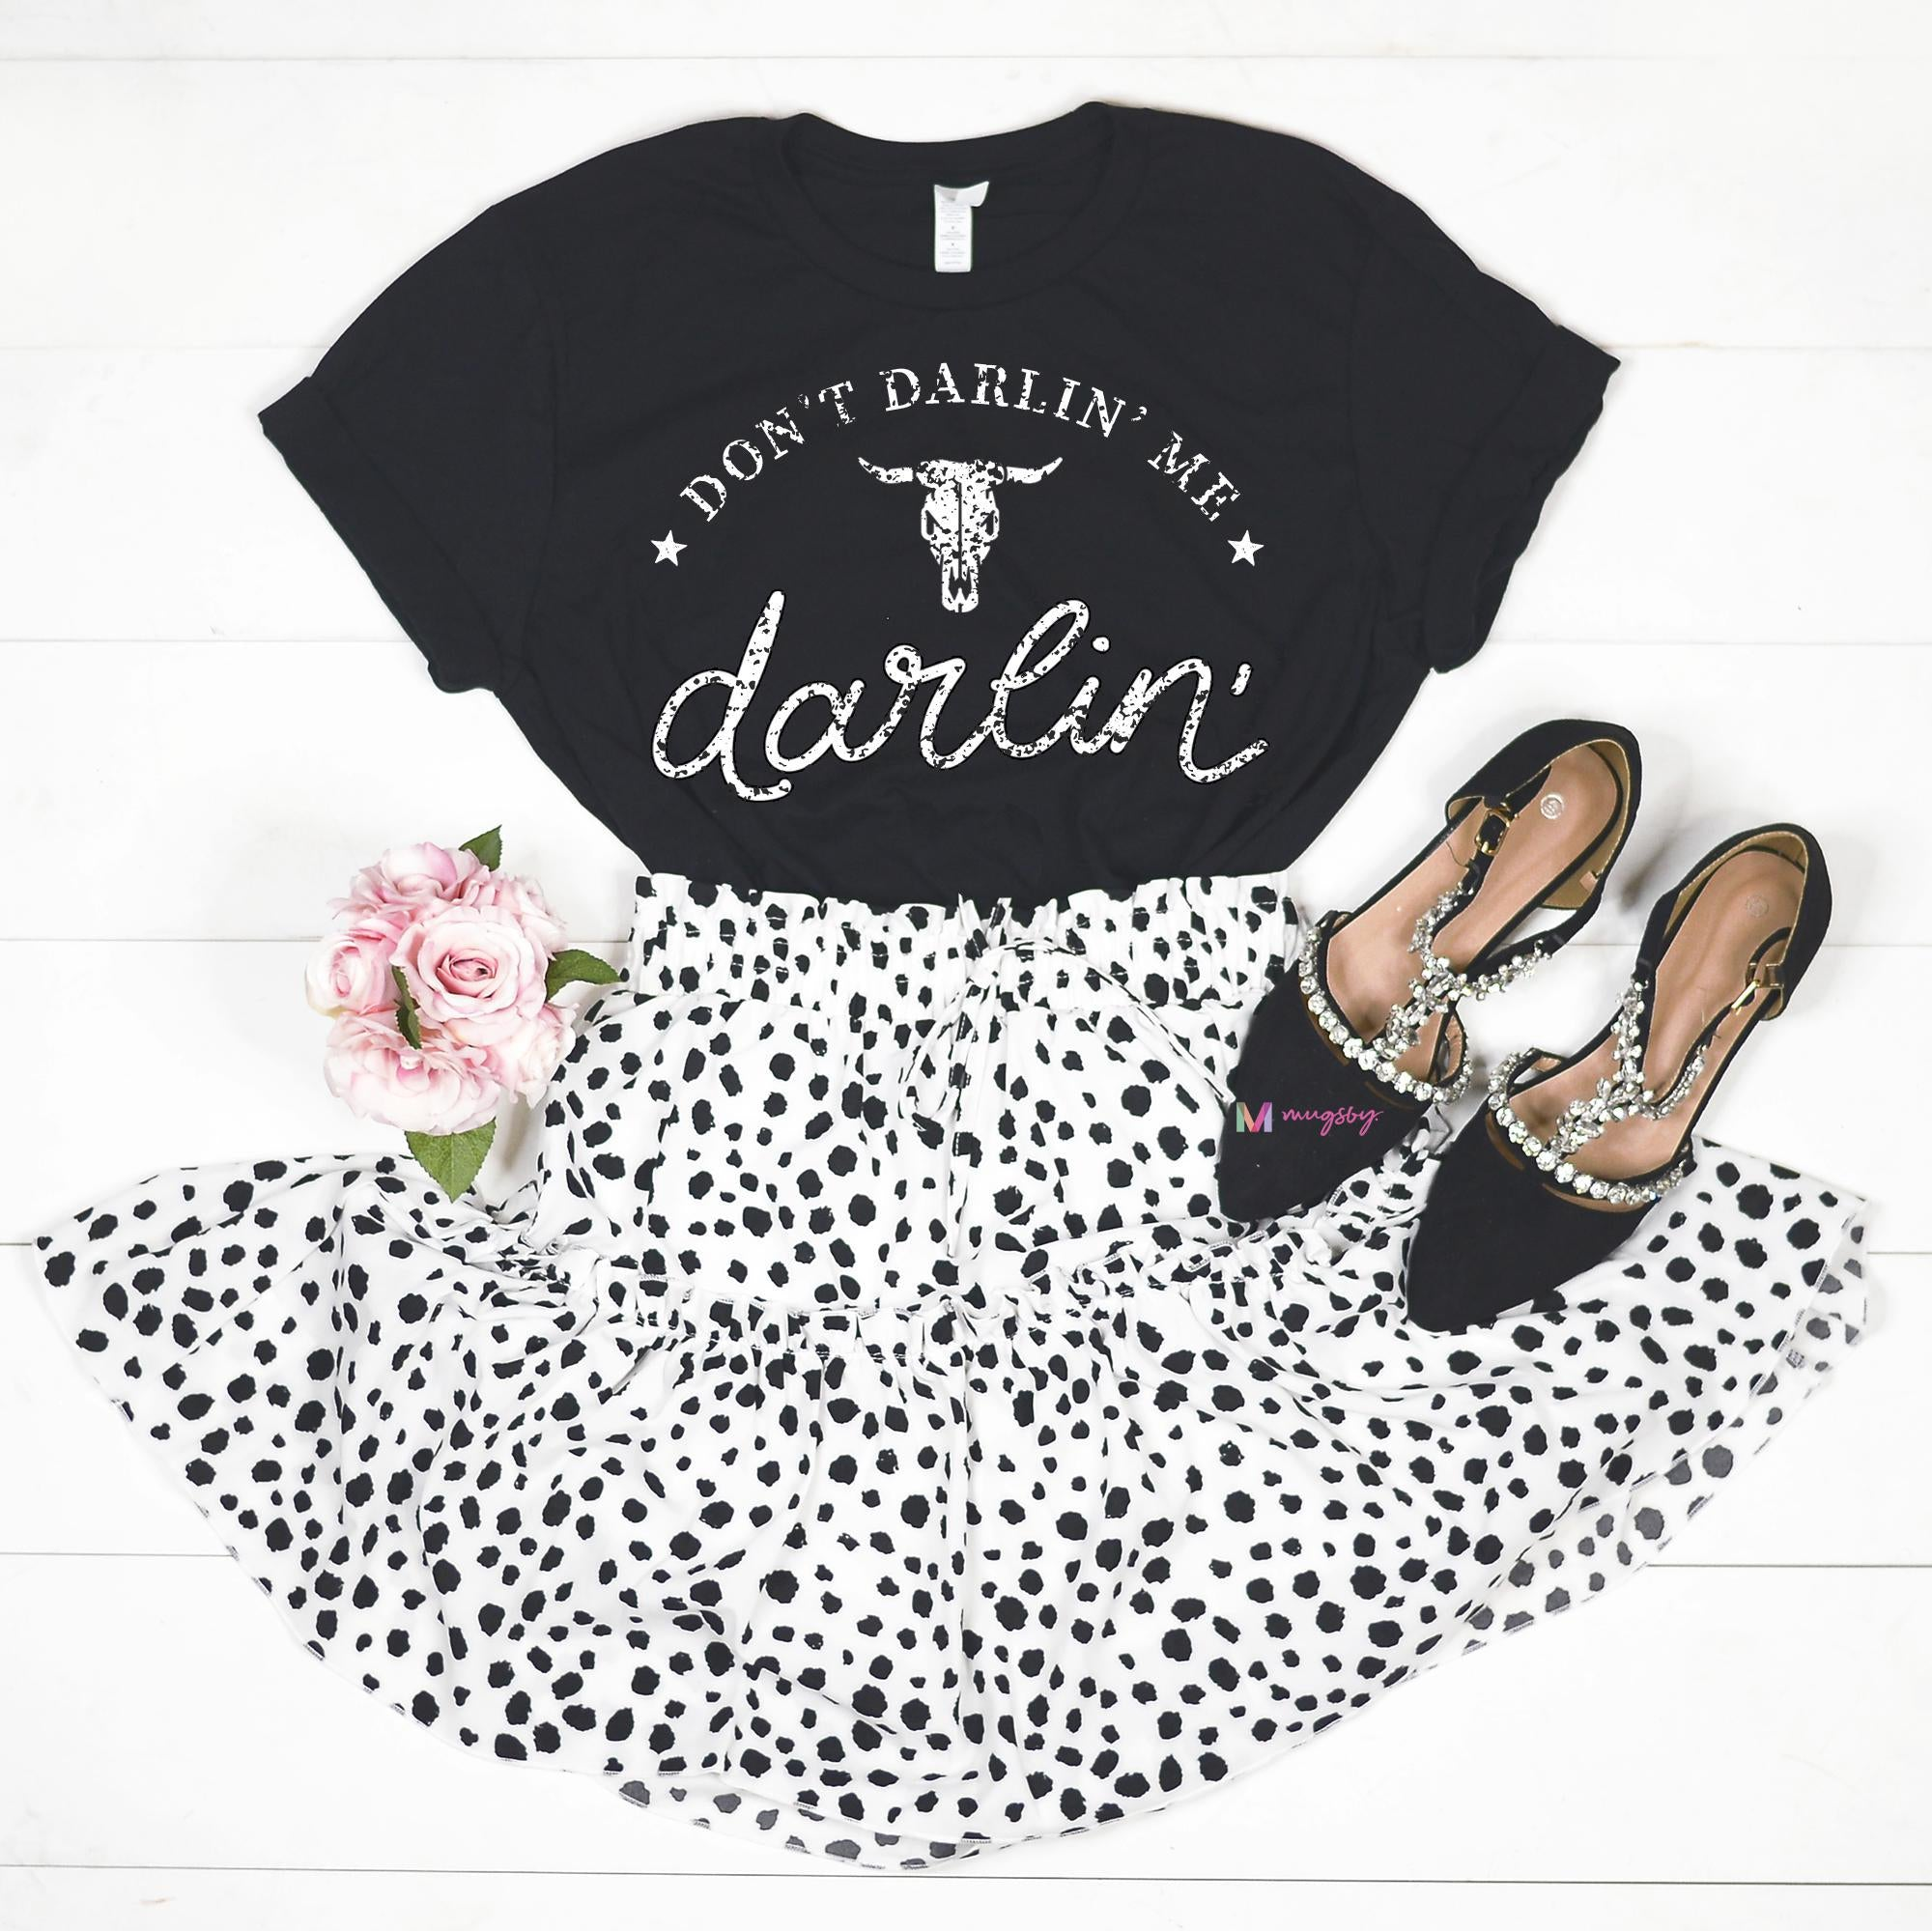 Don't Darlin' Me Darlin' Shirt